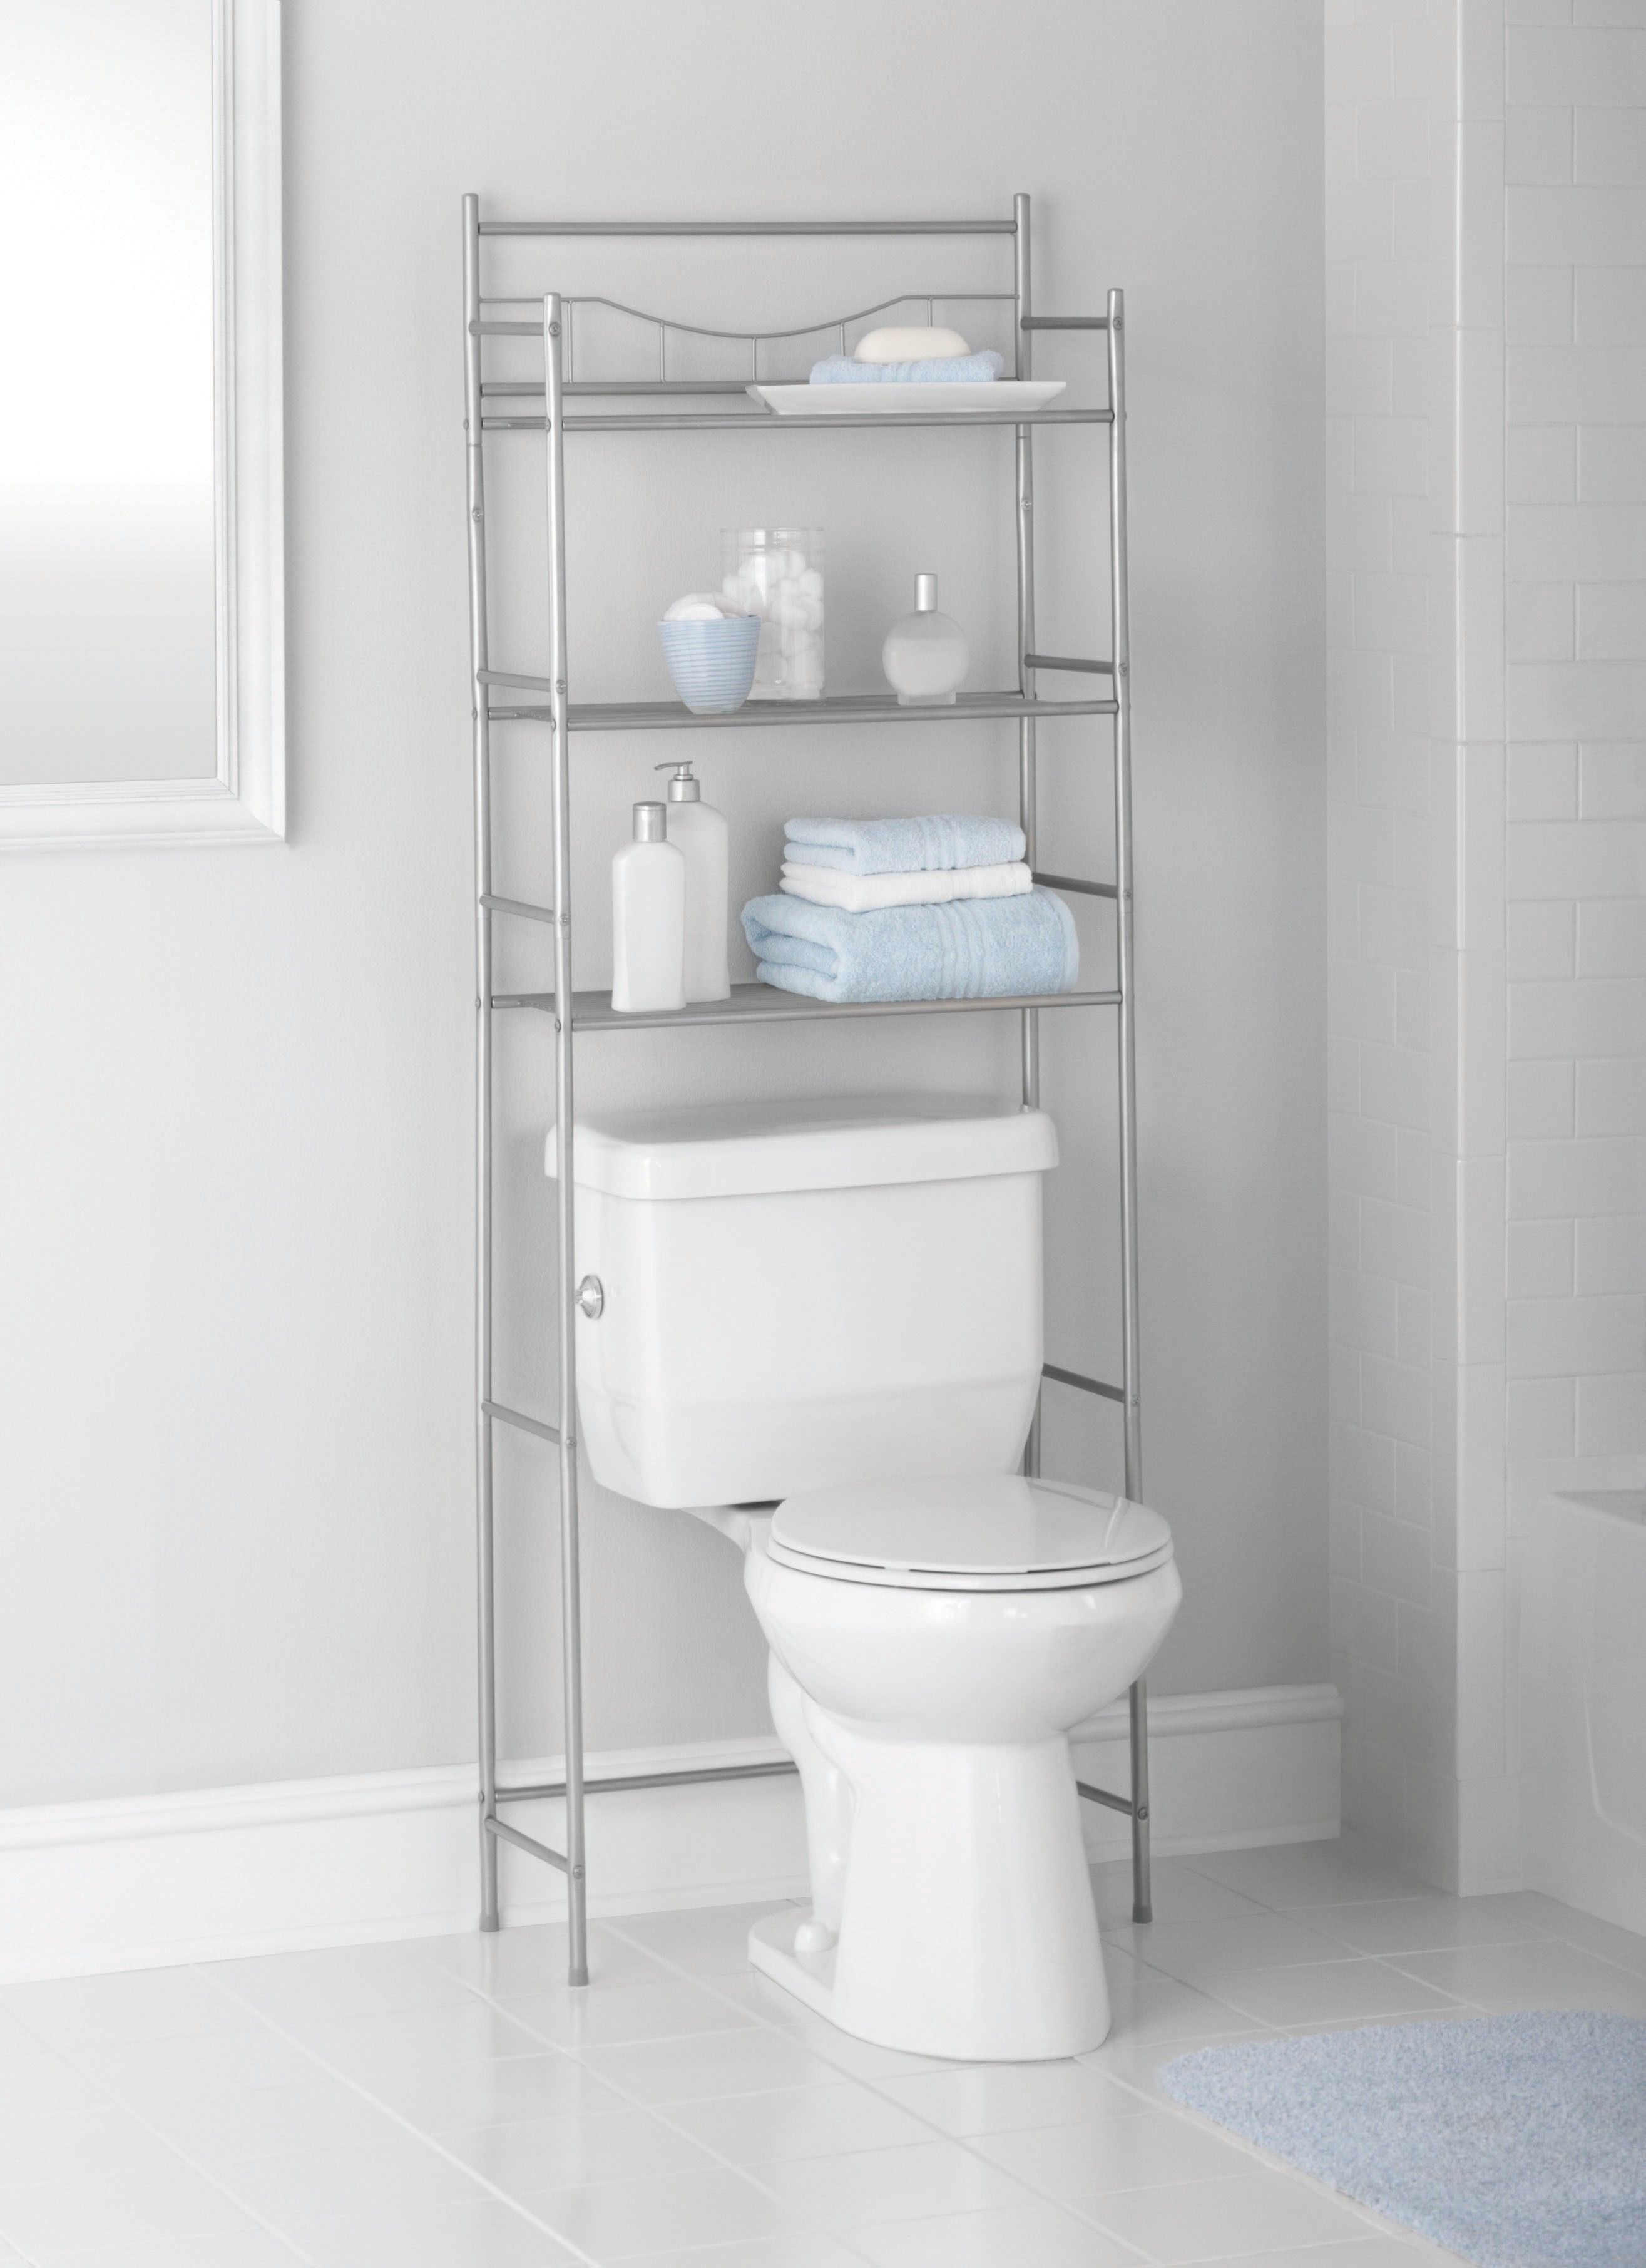 Home Bathroom Space Saver Bathroom Storage Shelves Bathroom Space